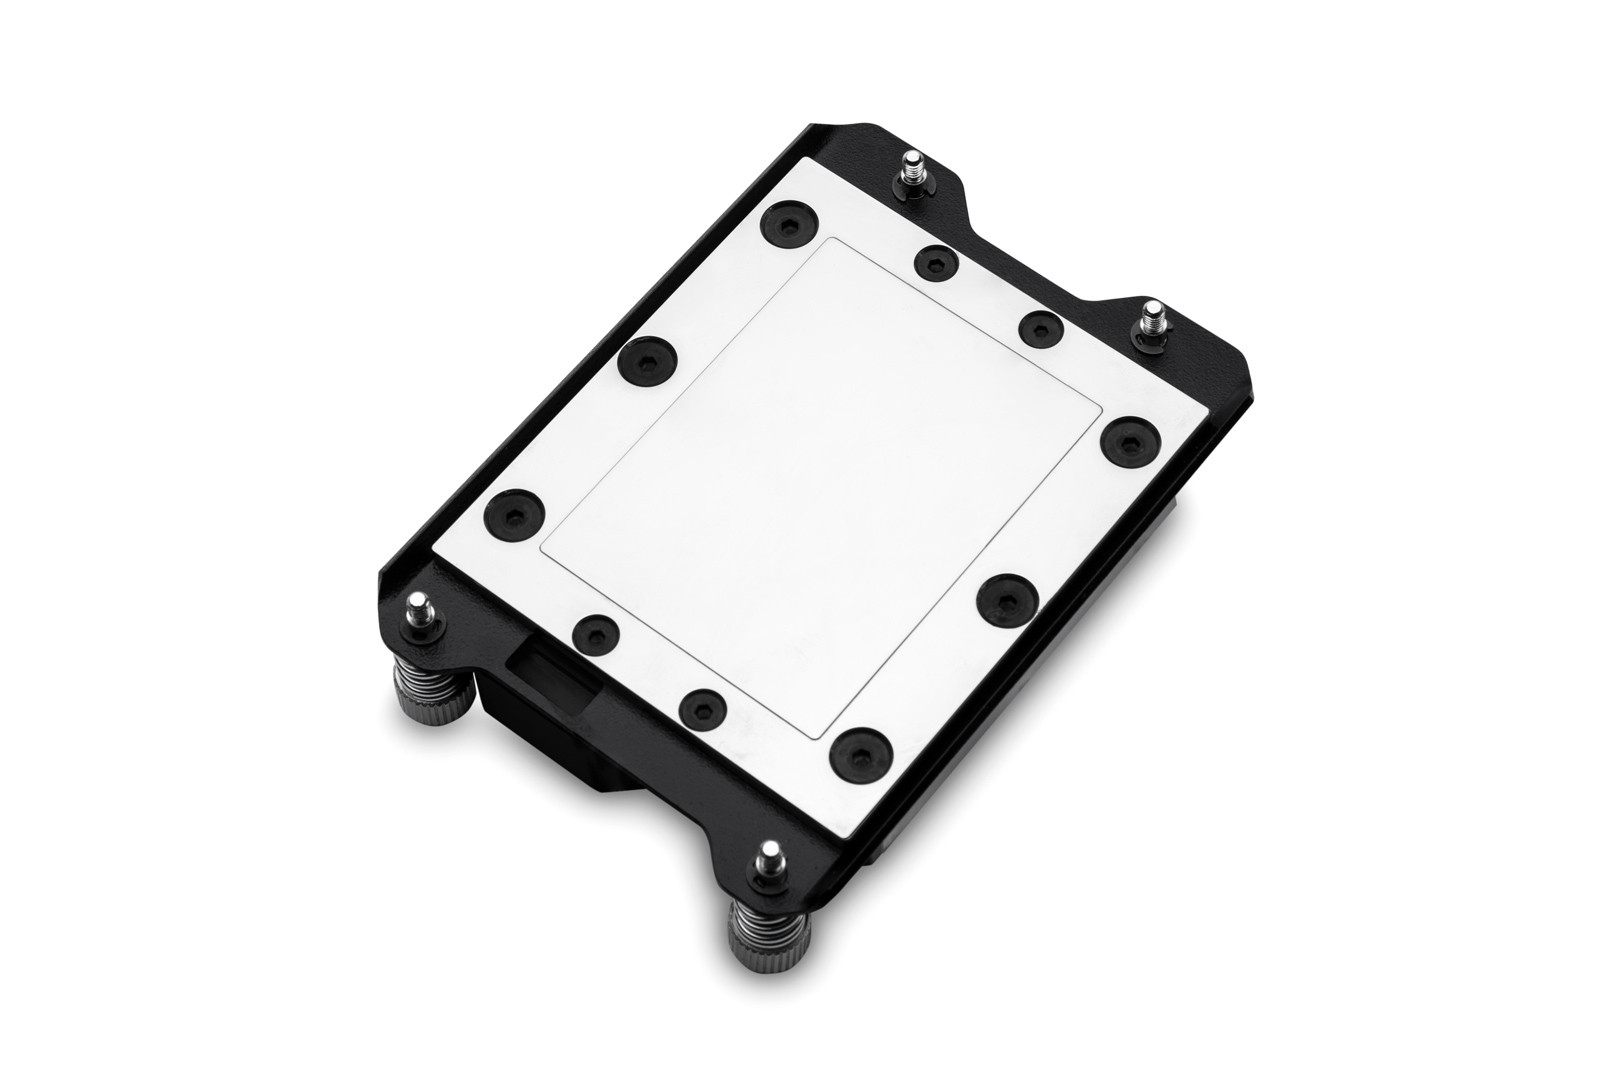 EK WaterBlocks EK-Quantum Velocity sTR4 - Nickel + Plexi